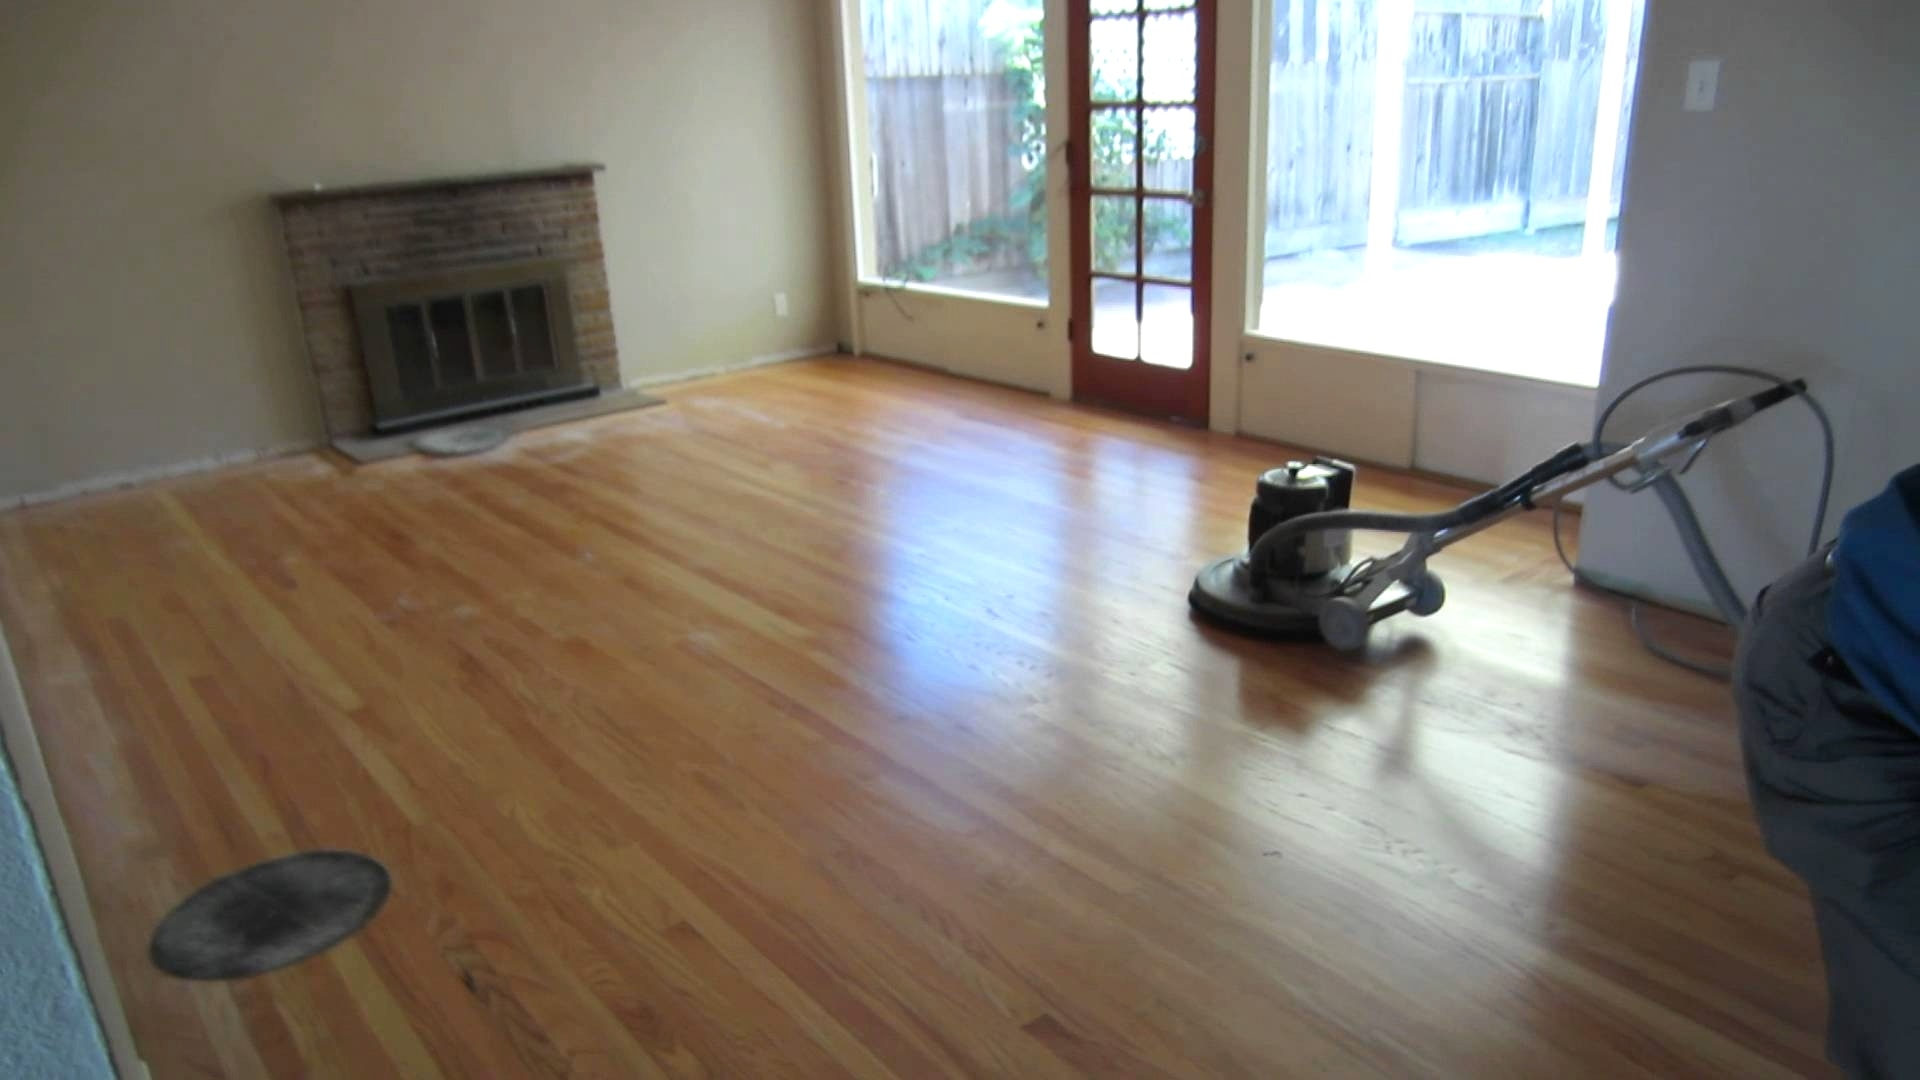 Wood Floor Buffers For Home Use